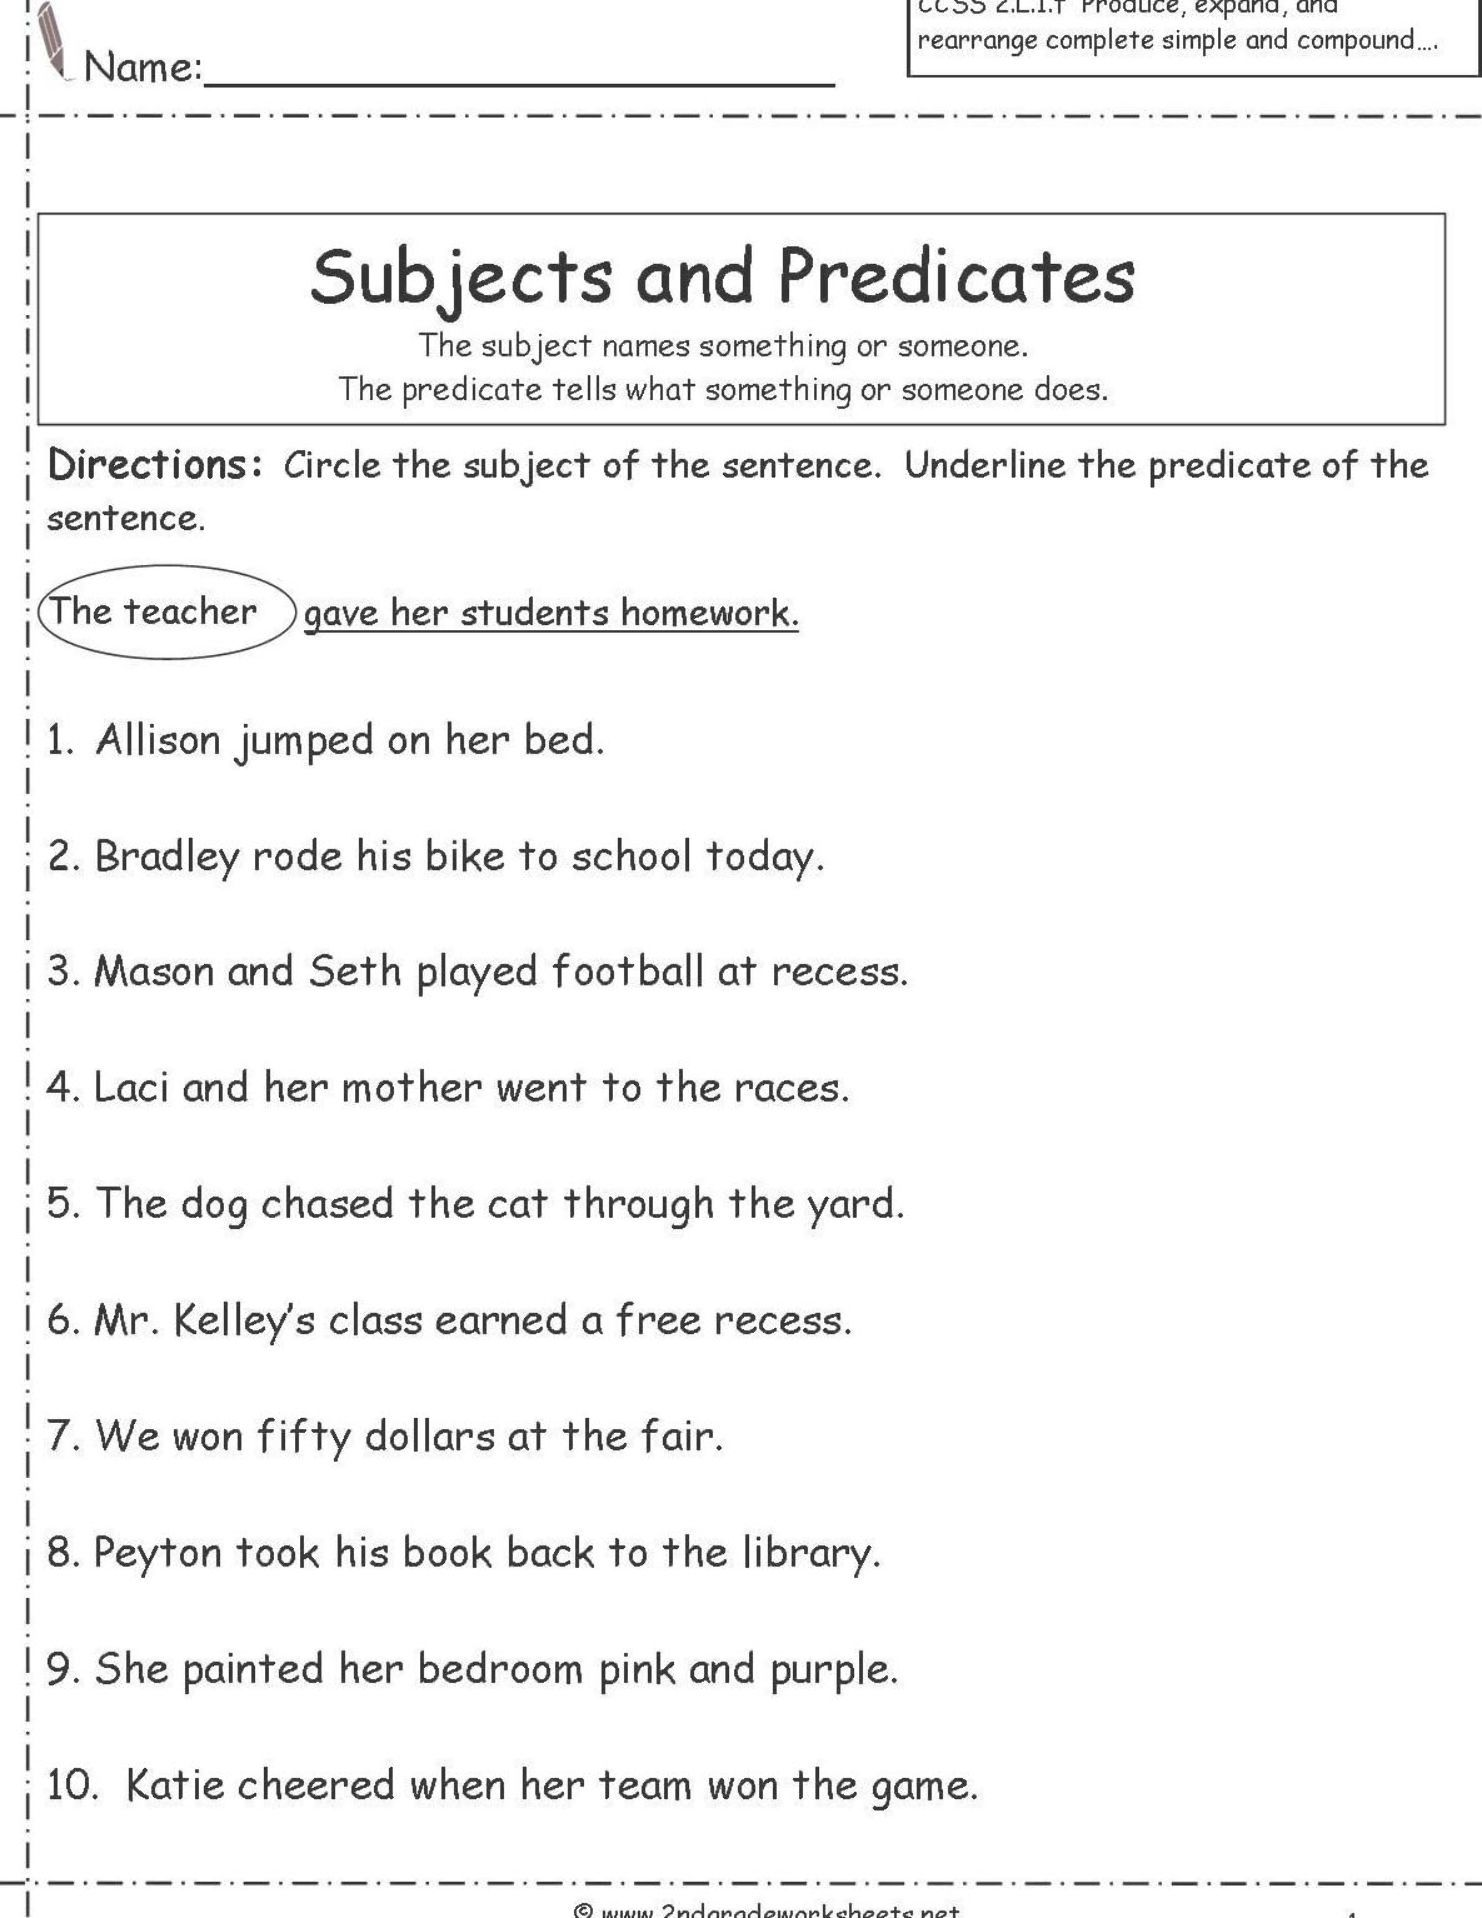 Subject And Predicate Worksheets For Second Grade   Subject and predicate  worksheets [ 1918 x 1482 Pixel ]